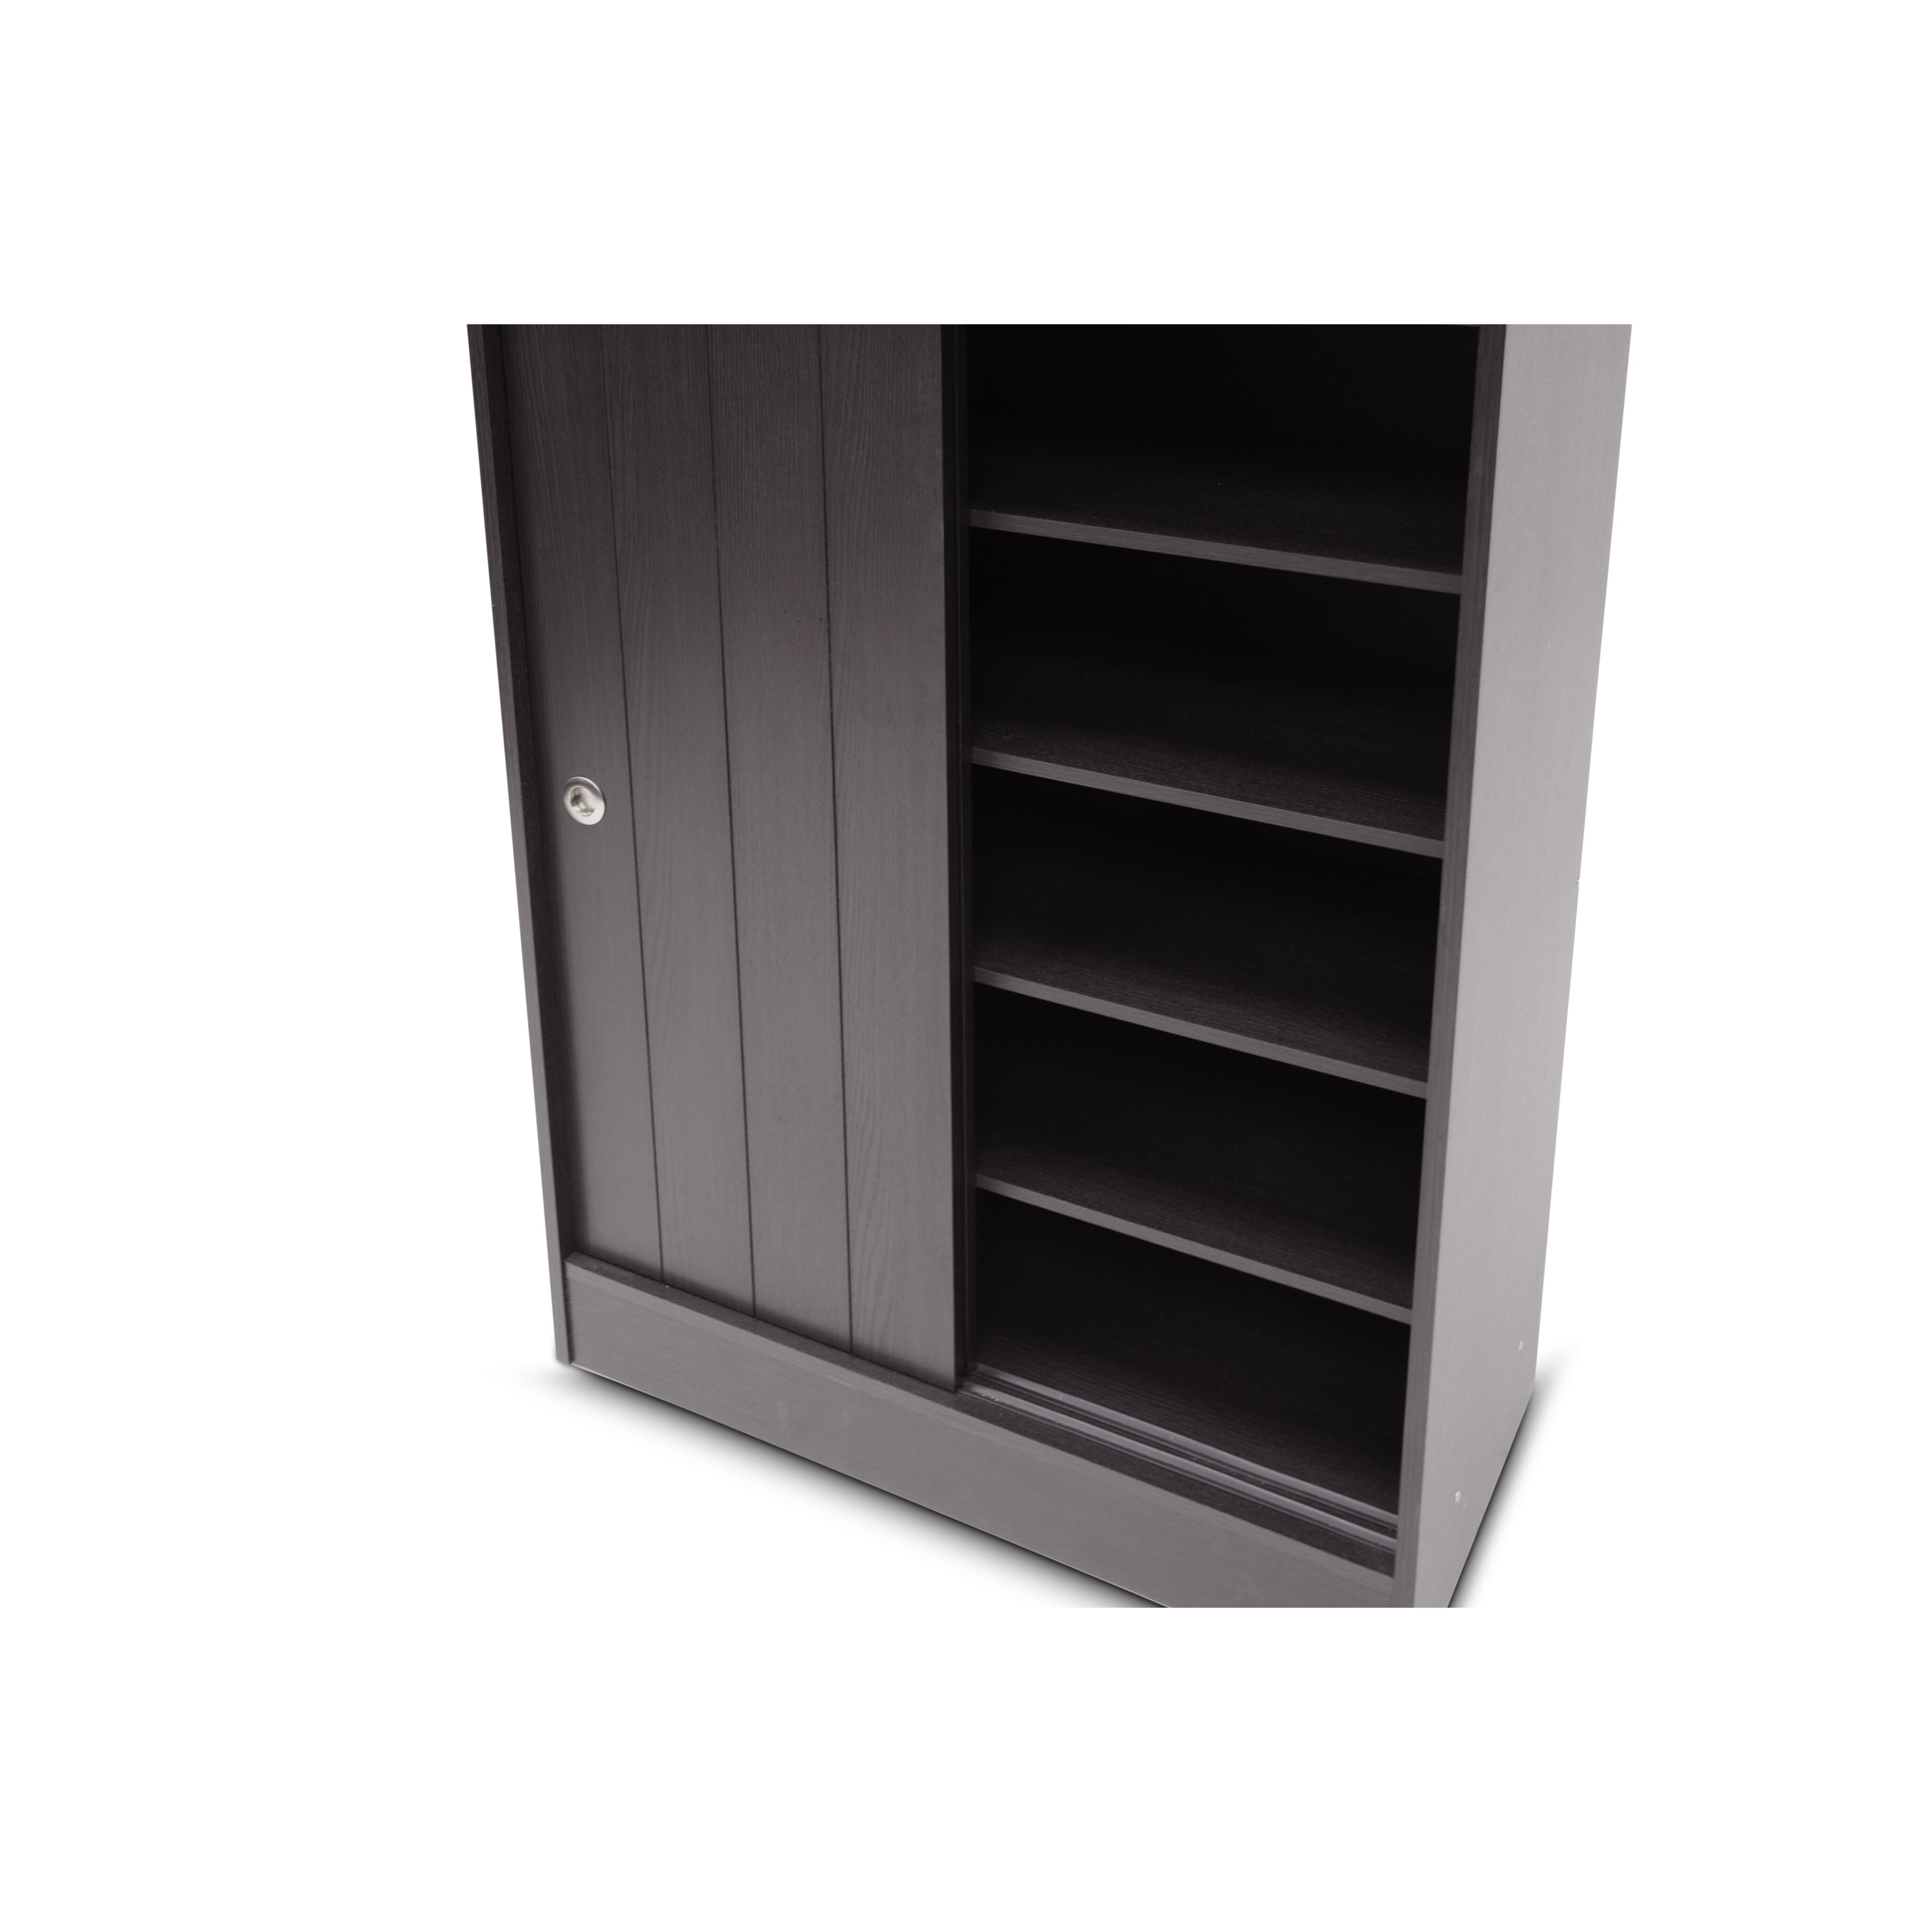 18 Storage Cabinet Wholesale Interiors Baxton Studio 18 Pair Shoe Storage Cabinet